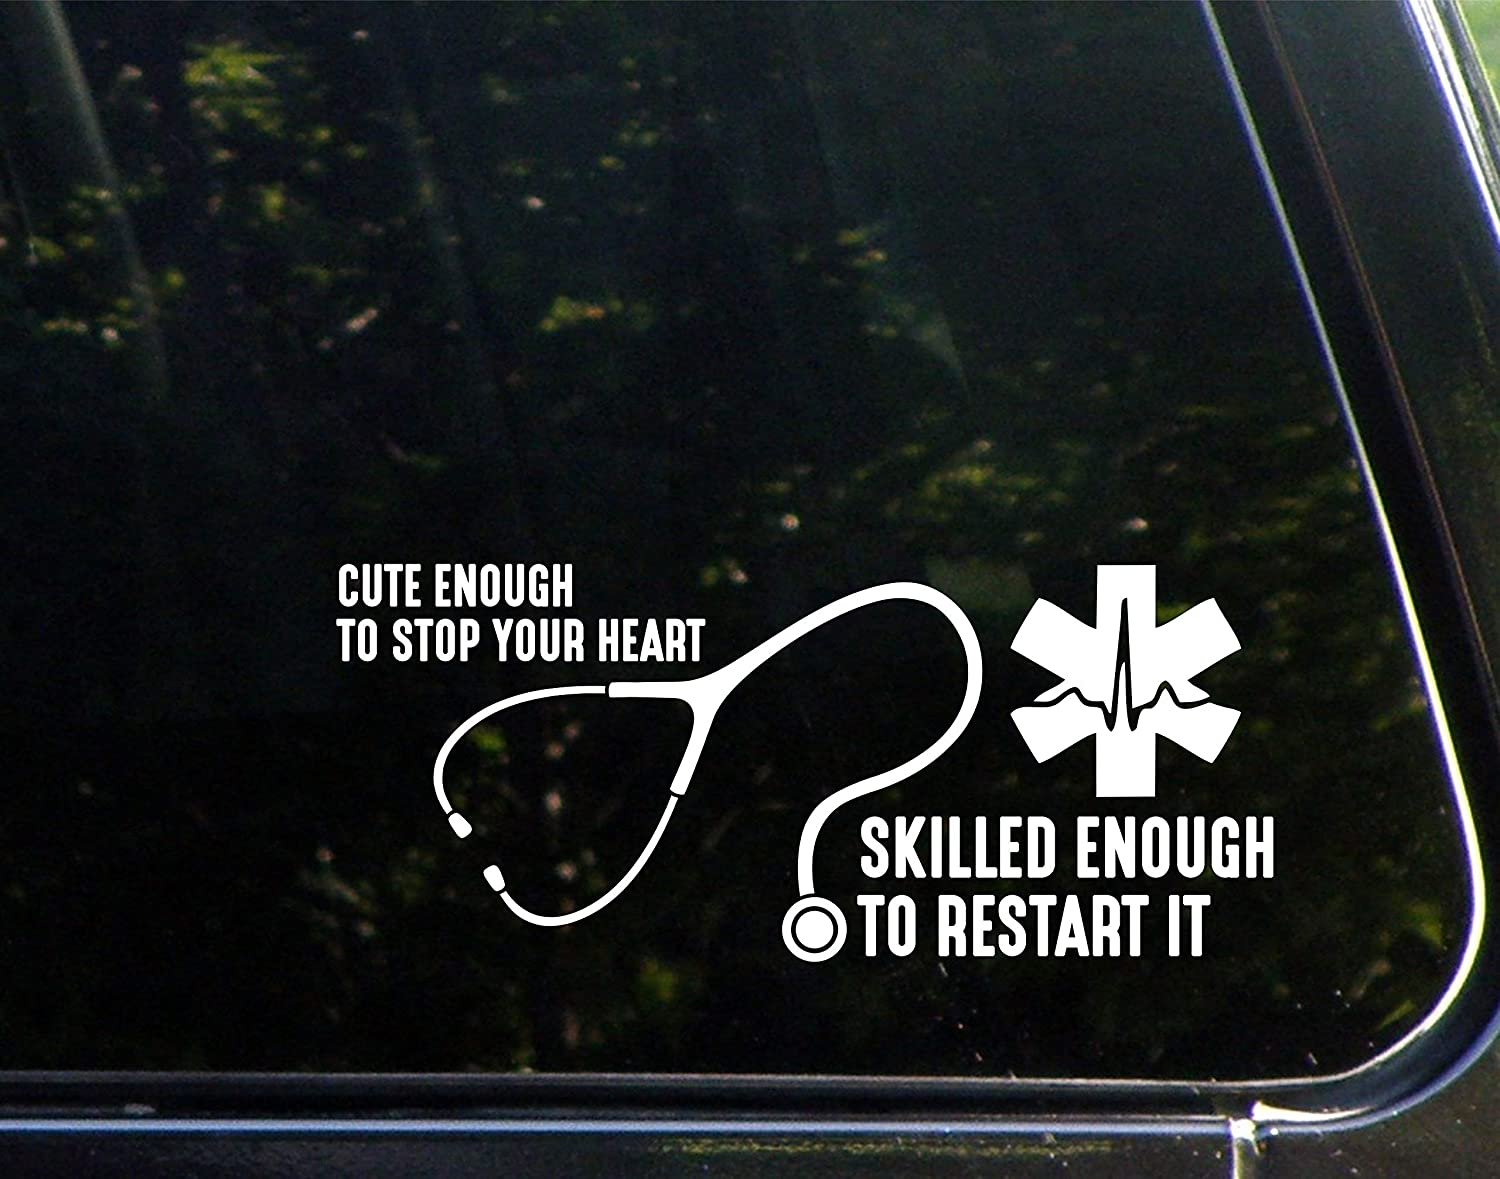 "Diamond Graphics Cute Enough To Stop Your Heart Skilled Enough To Restart It (8-3/4"" x 3-3/4"") Die Cut Decal For Windows, Cars, Trucks, Laptops, Etc"